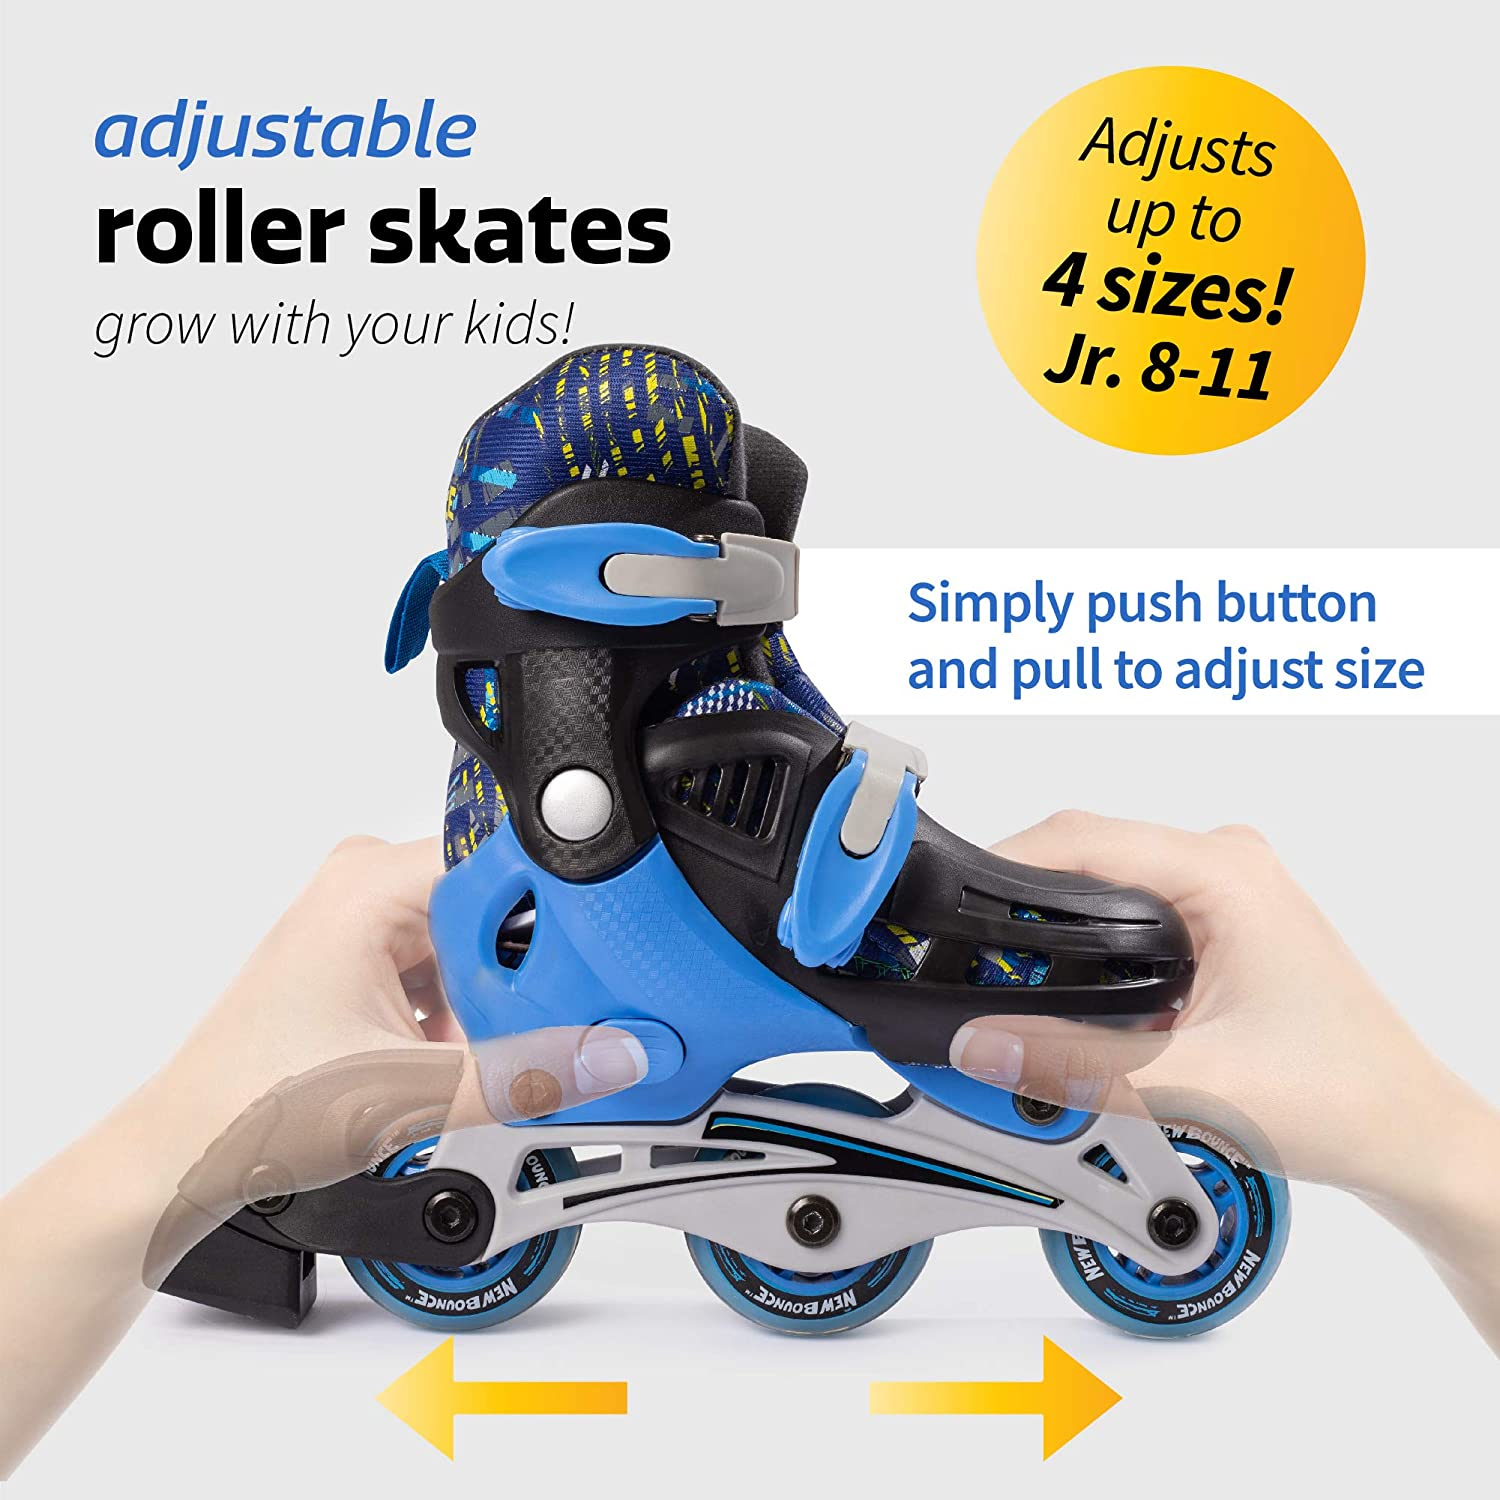 CYGJLYZ Skate Children Roller Skates Double Row 4 Wheel Sliding Shoes Adjustable Size Skating Beginners Kids Security 3 Gear Suitable For 2-8 Year Old Baby Birthday Present Color : A, Size : 30